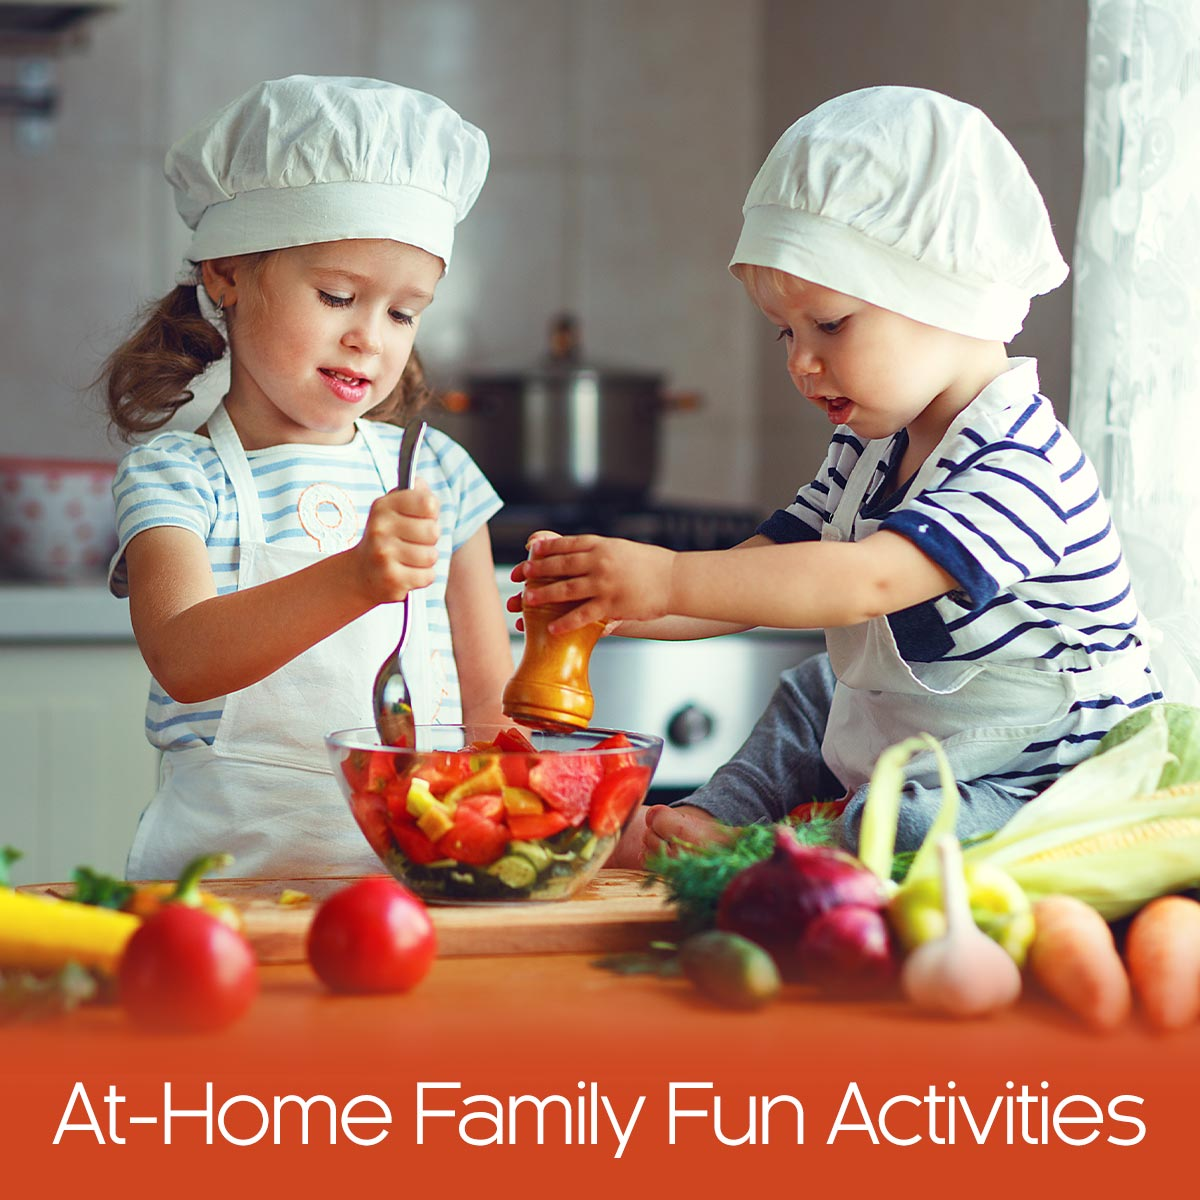 At-Home Family Fun Activities